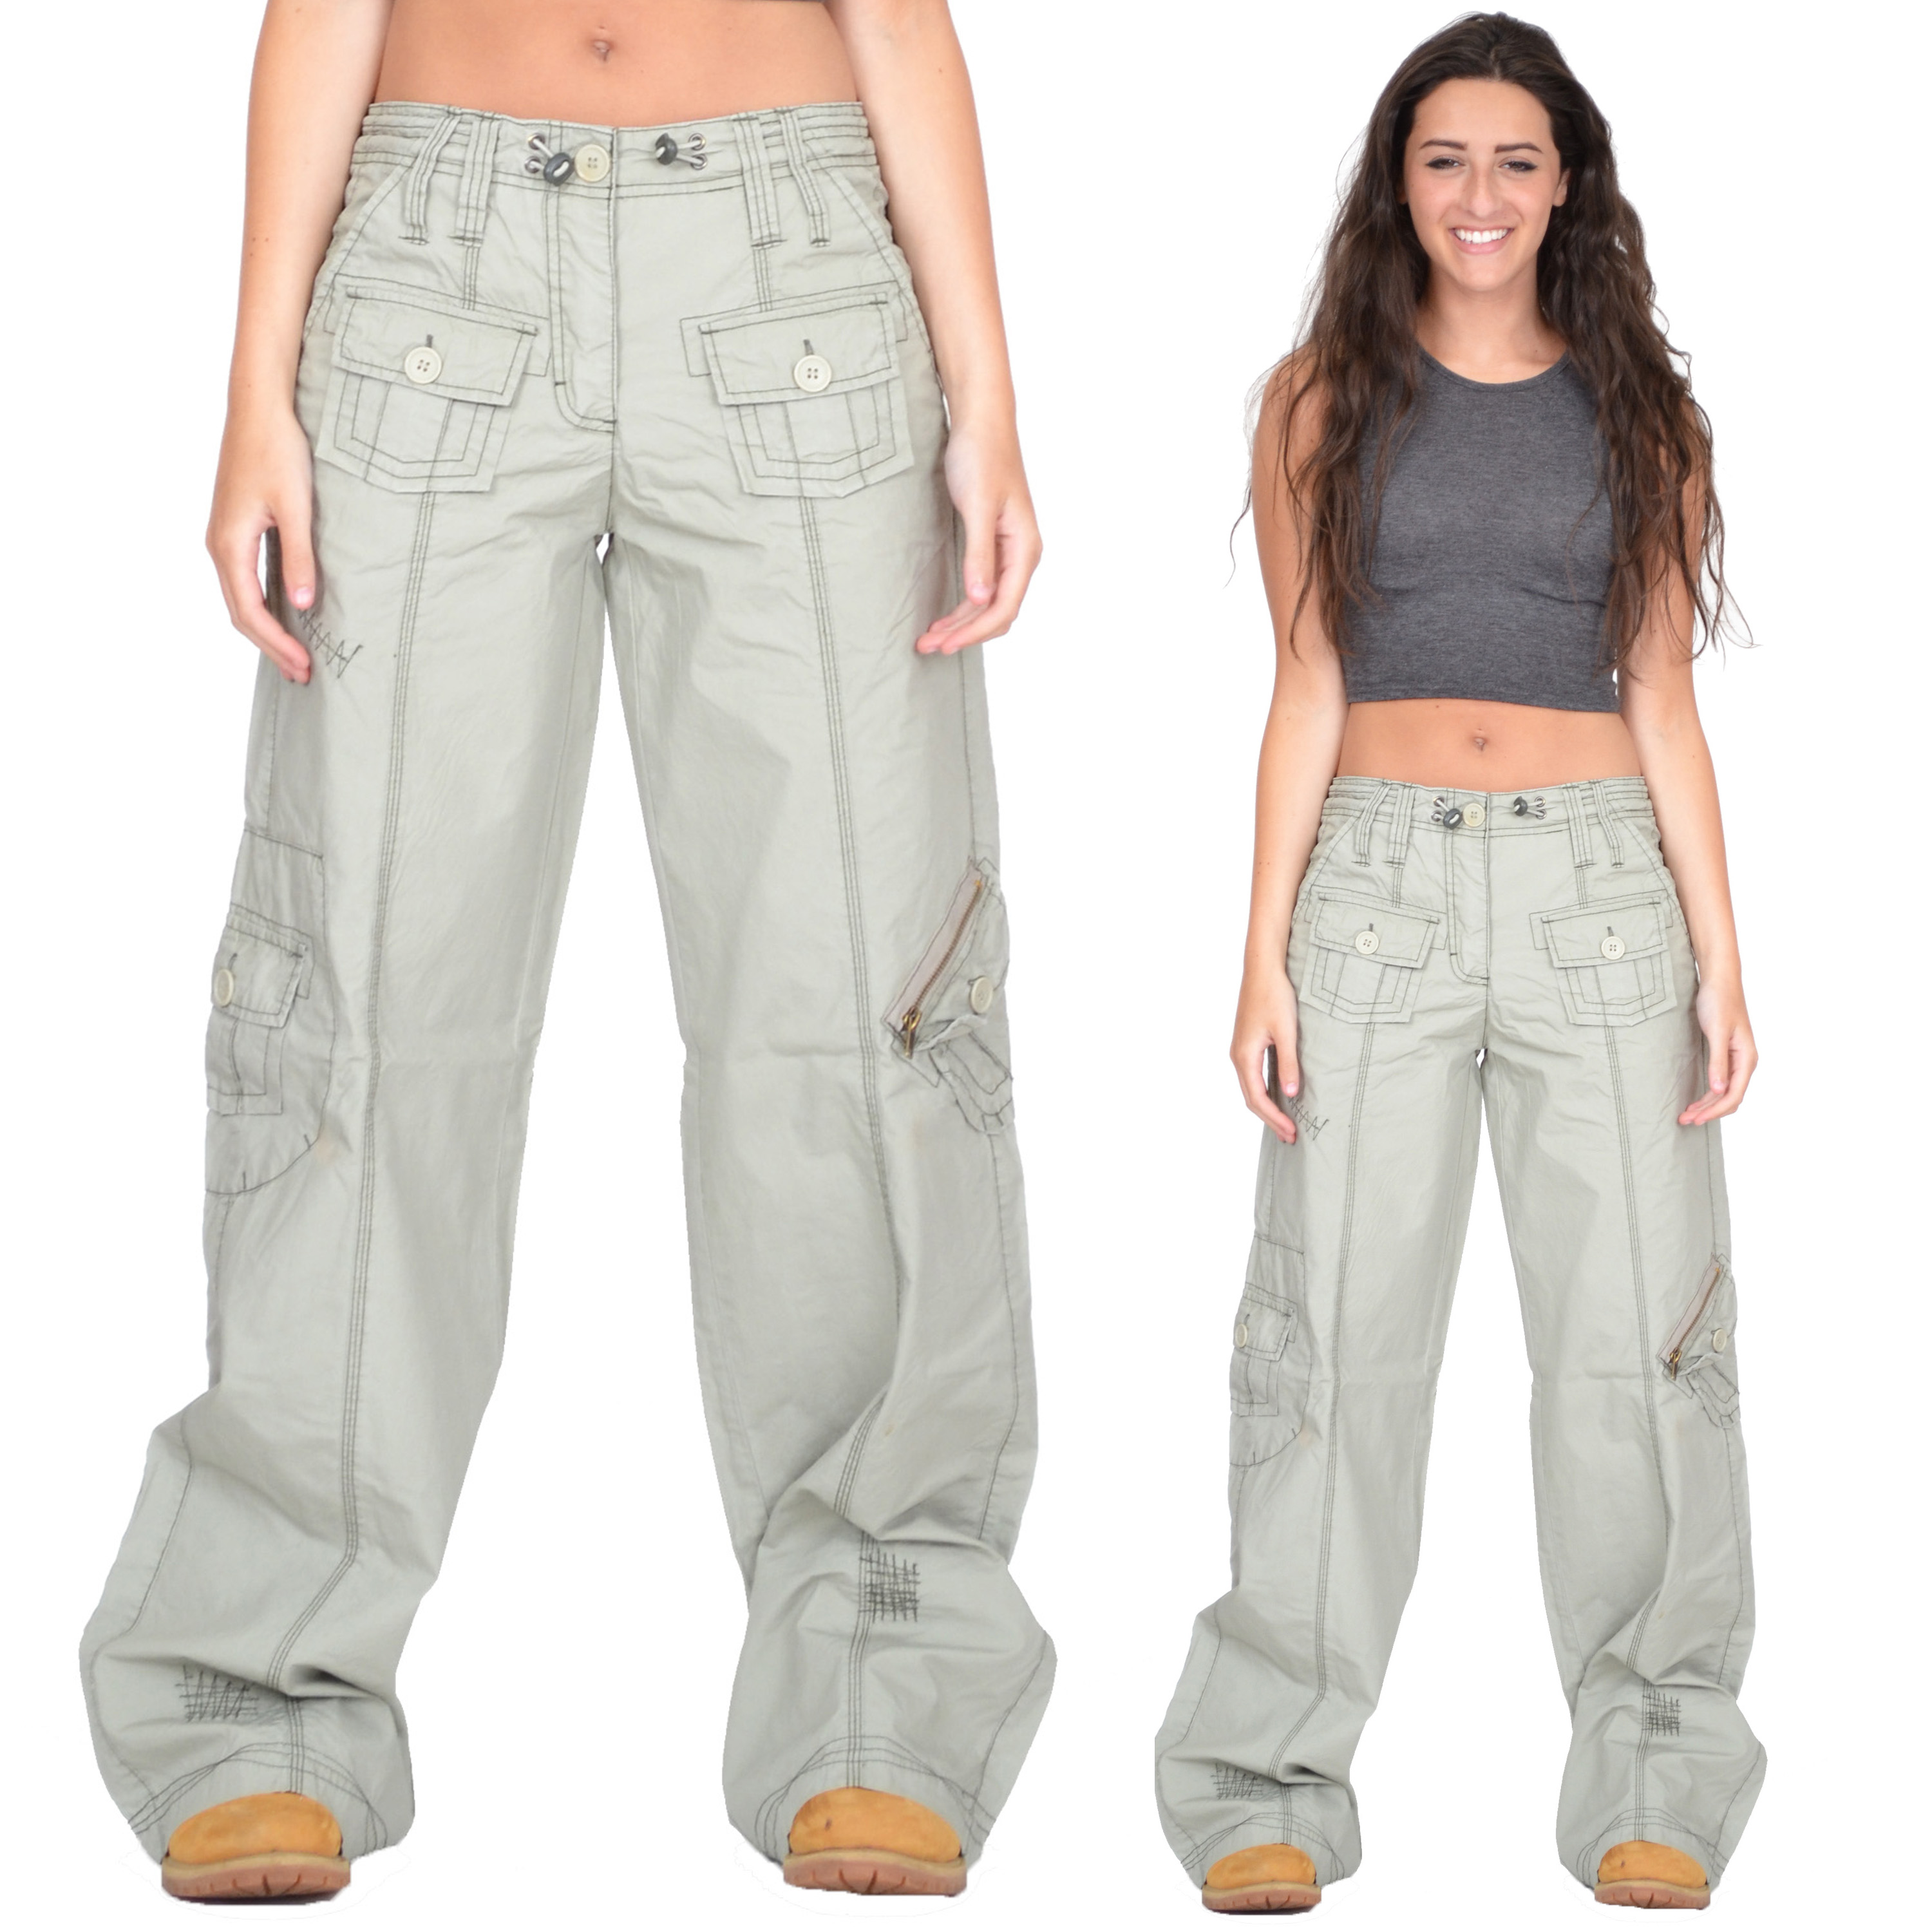 Outfits with Baggy stilyaga.tk you are tired of wearing same mainstream trousers,skinny pants and want to try something new then must get inspiration from a baggy pants style. Baggy trousers can be worn for all the occasions provided you know to match it as per the event.